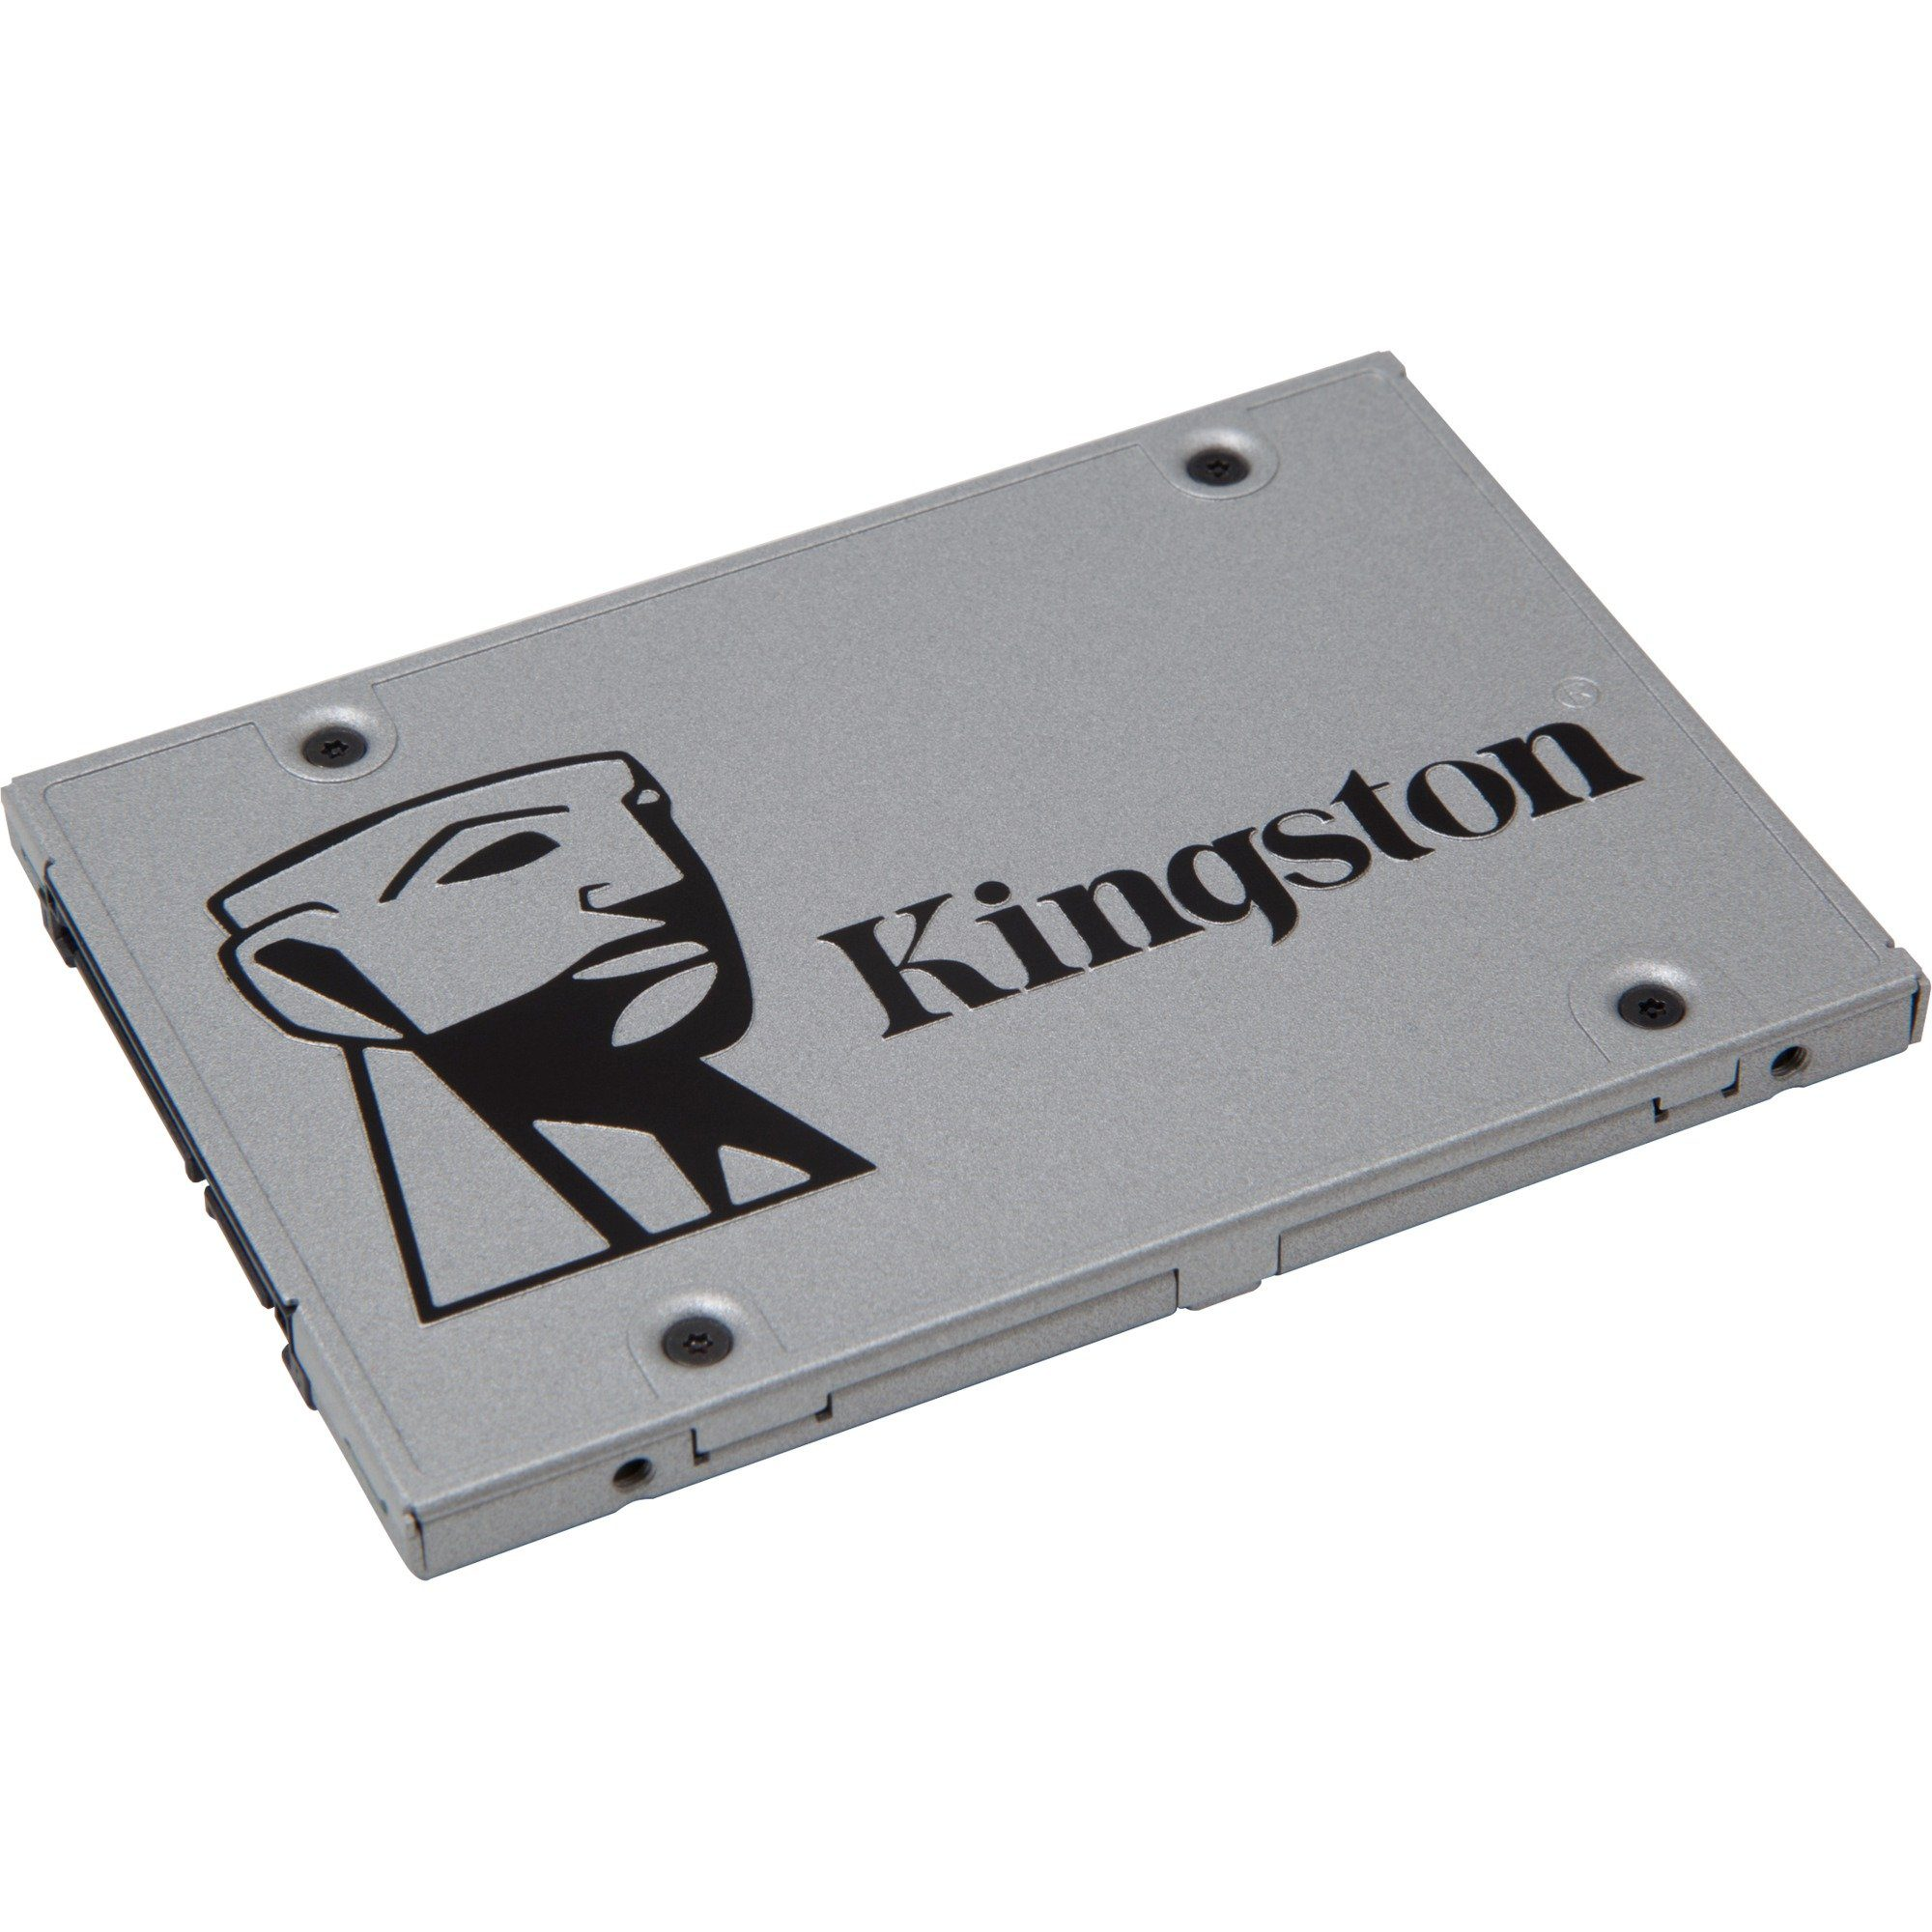 Kingston Solid State Drive »SUV400S3B7A/960G 960 GB Kit«